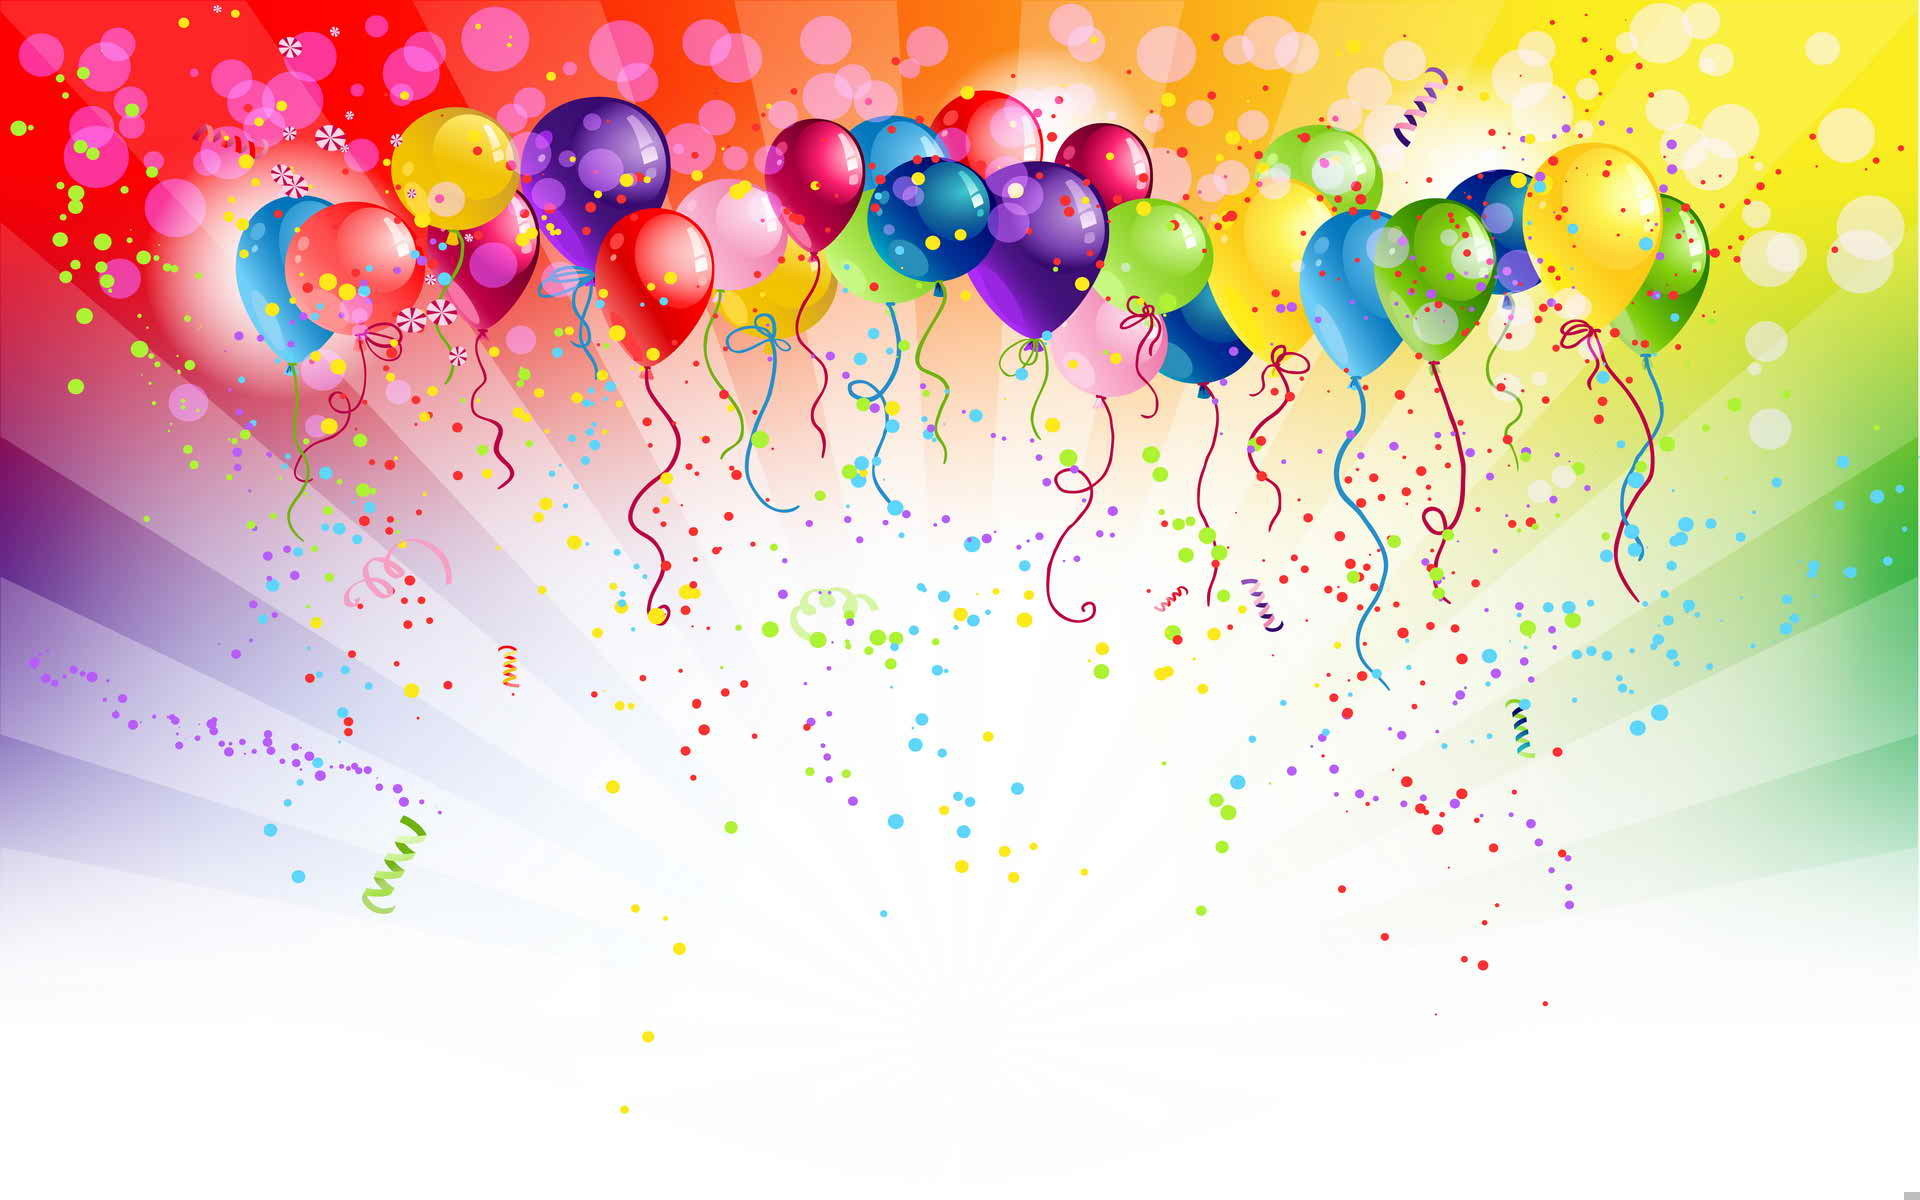 birthday card wallpaper hd ; 936632-birthday-card-backgrounds-1920x1200-for-hd